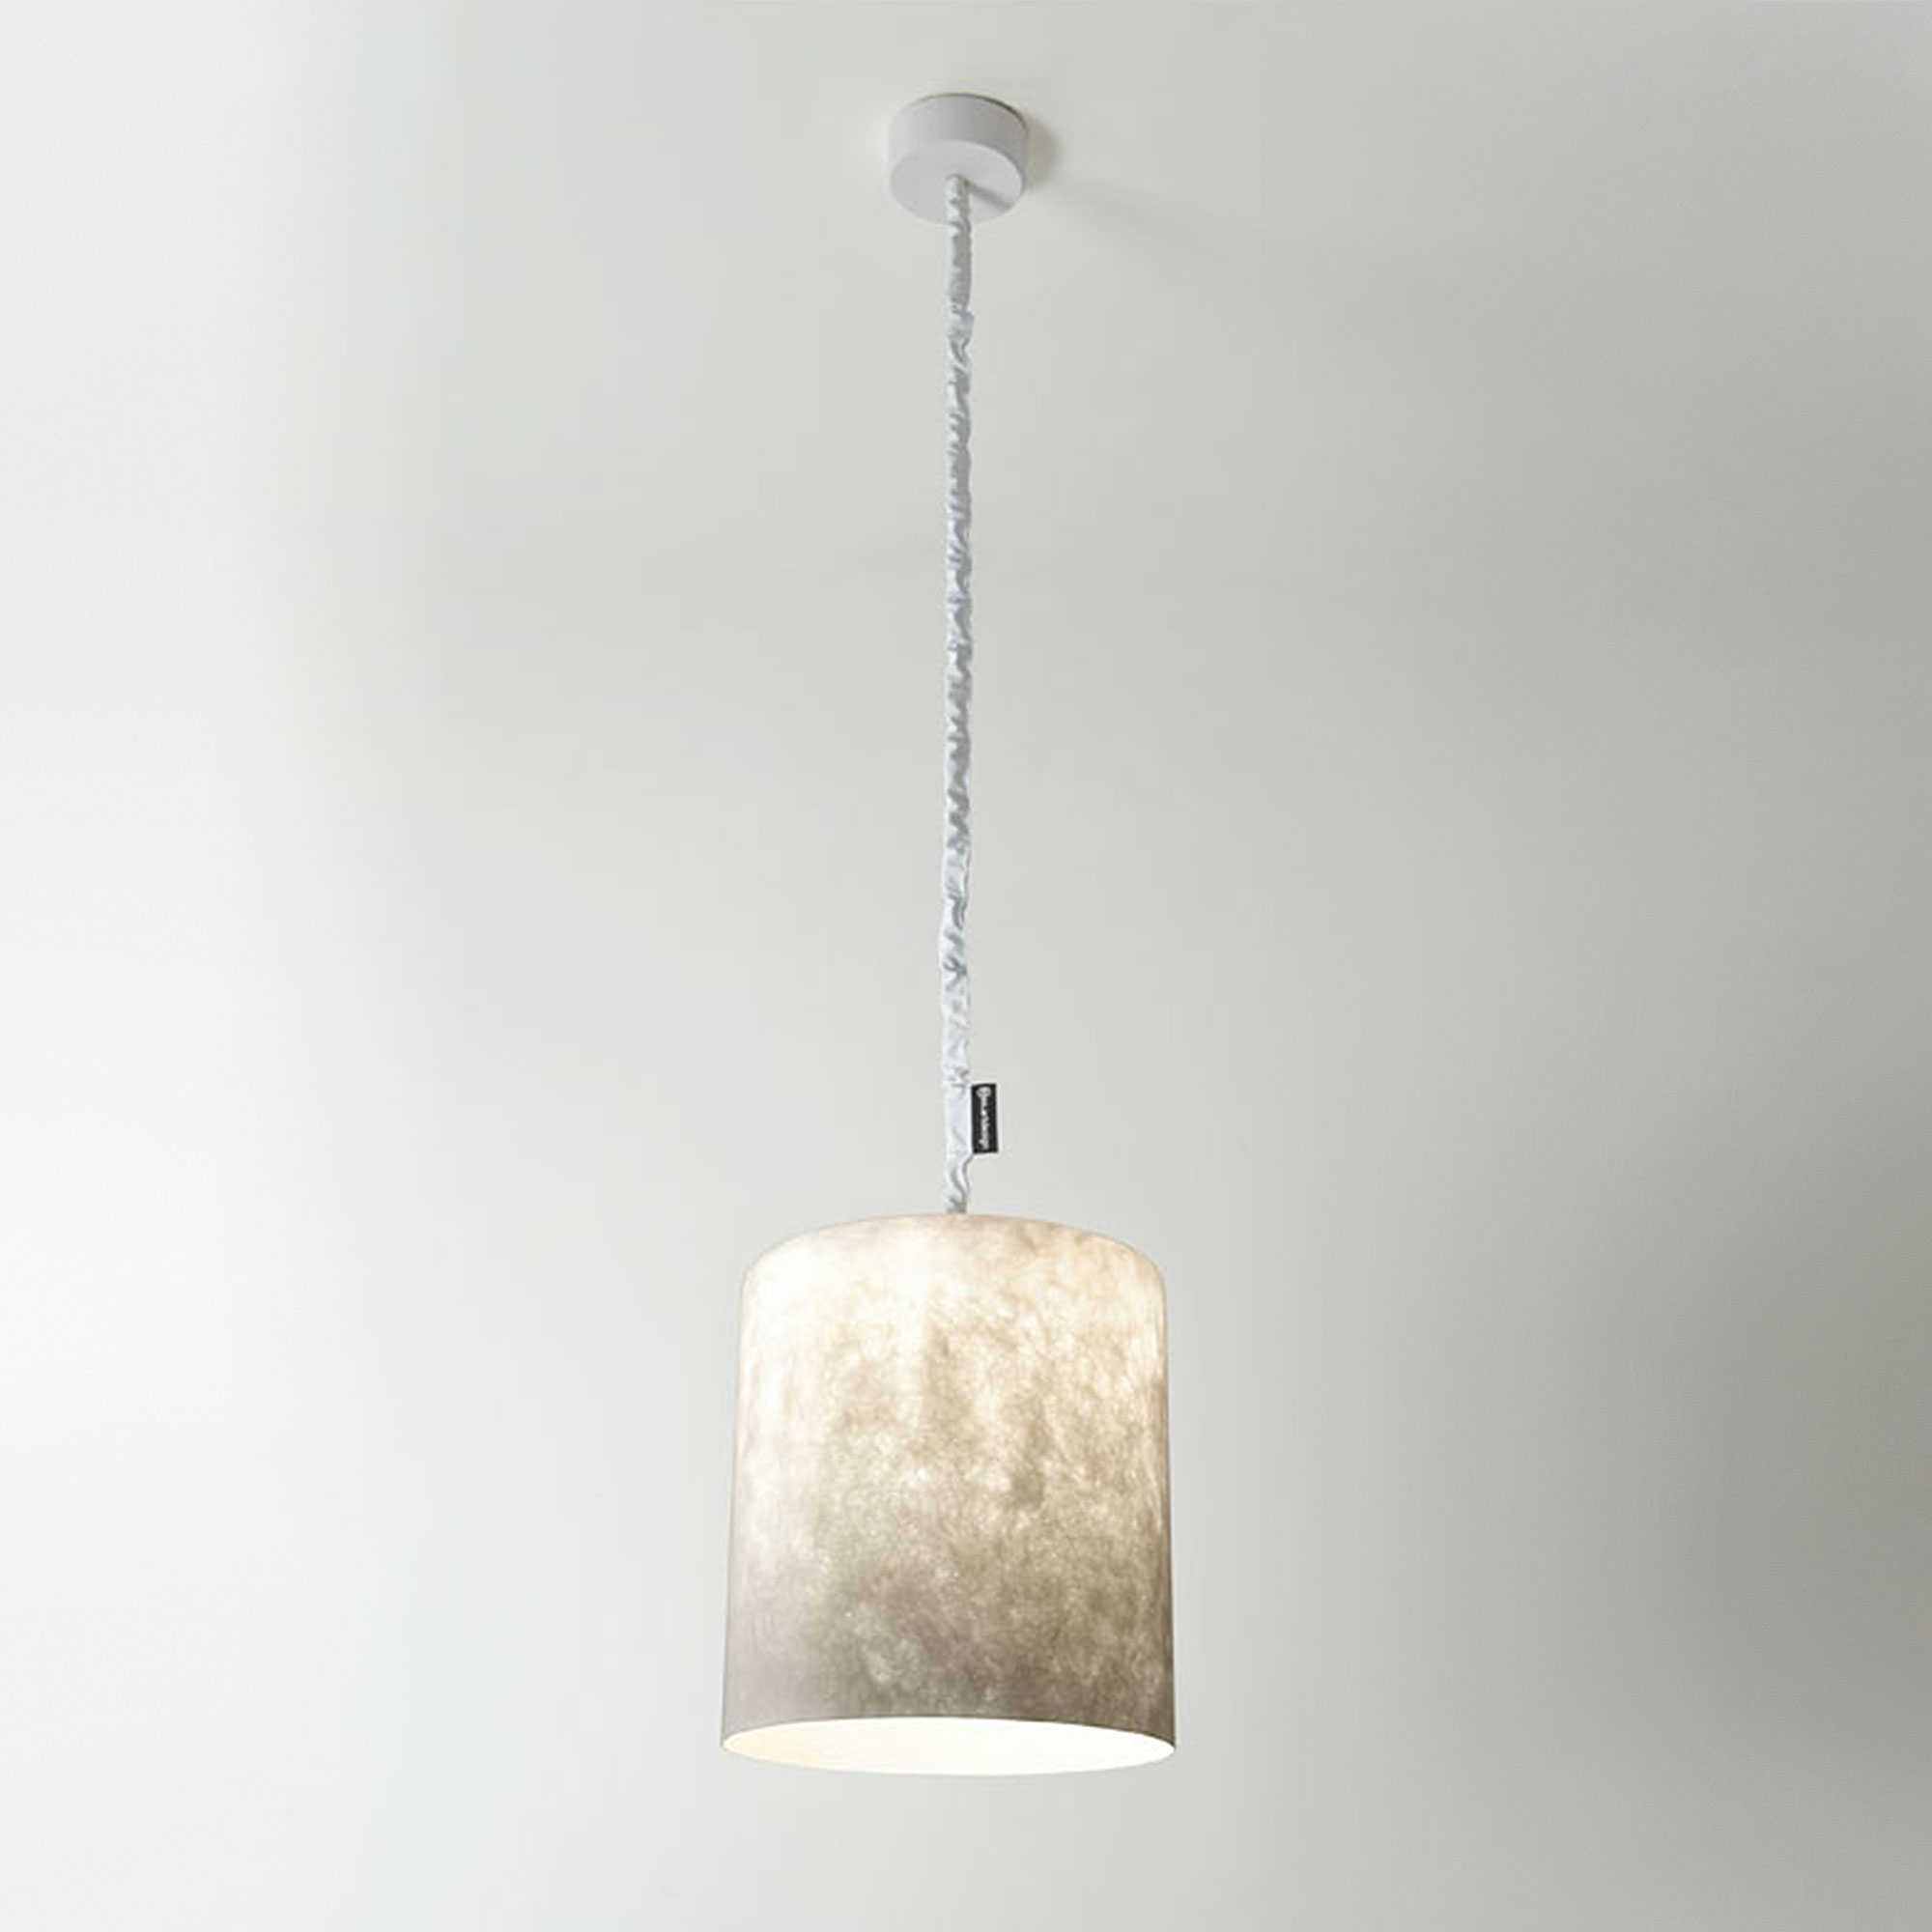 Bin Nebula Pendant Light | In-es Art Design